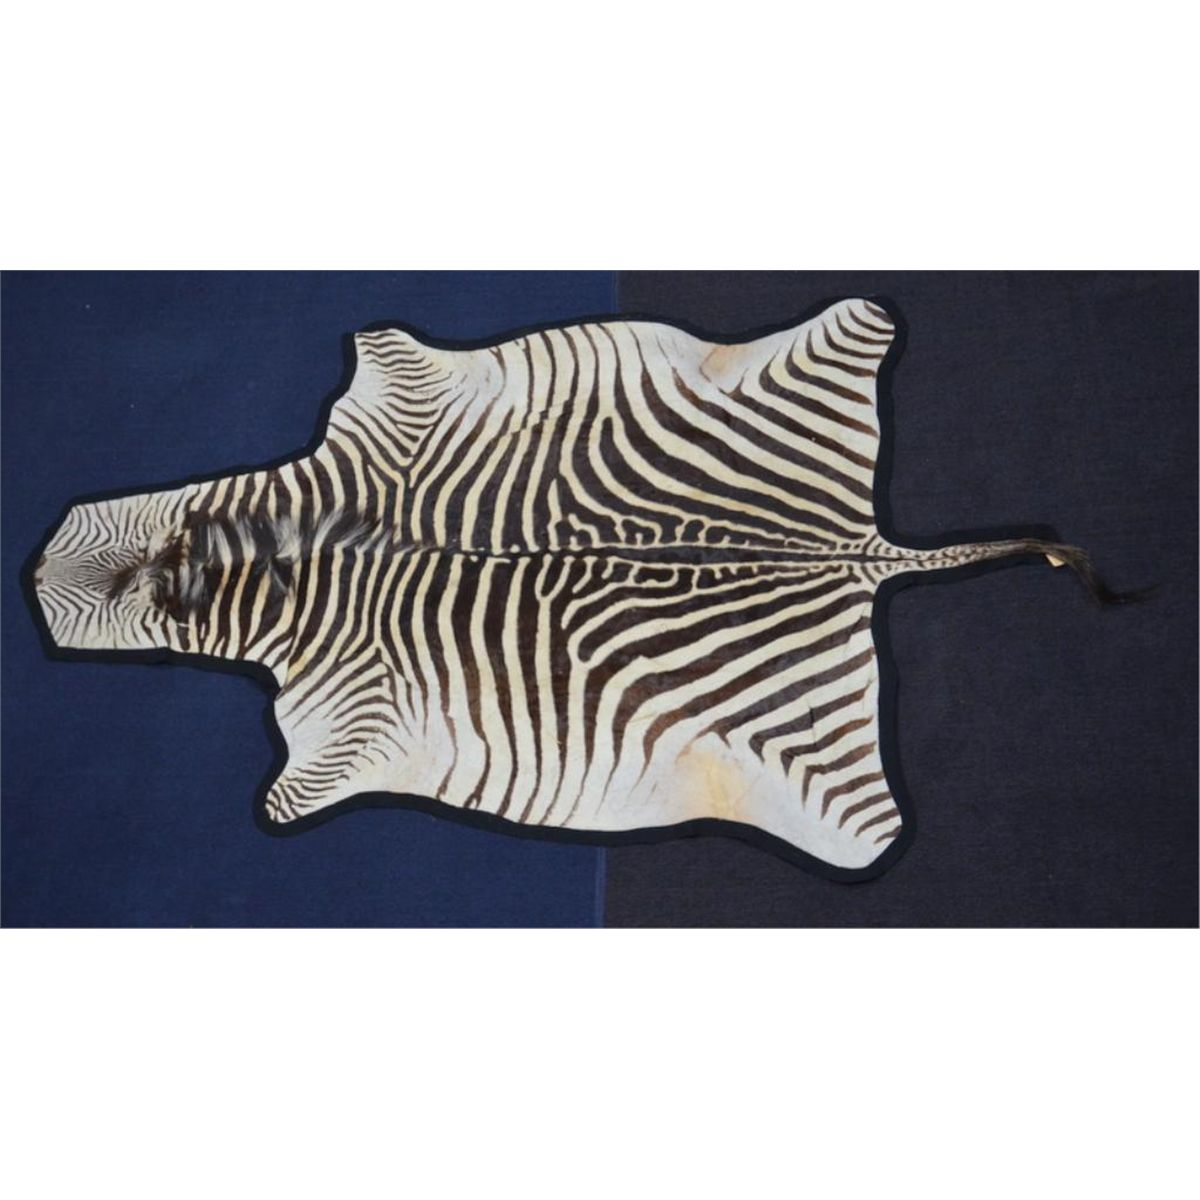 Large Zebra Skin Rug Approx. 5 Feet By 8 Feet In Overall